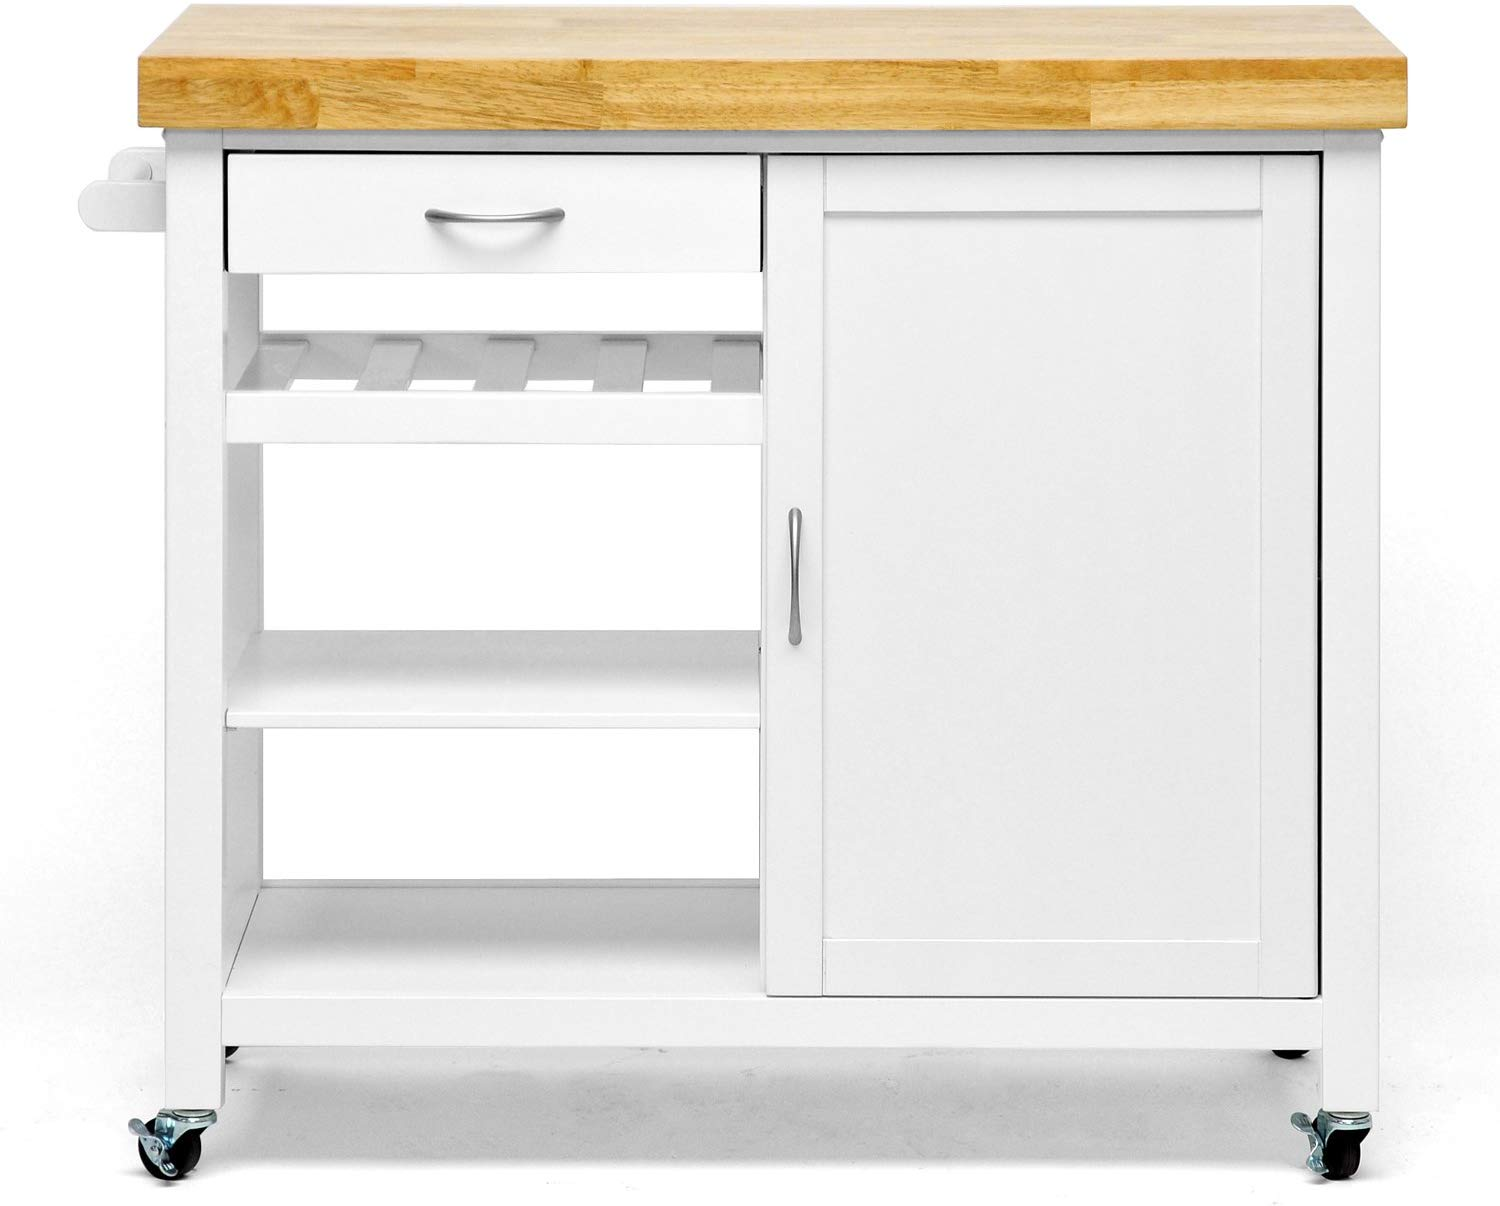 Kitchen storage racks walmart best storage design 2017 for Kitchen trolley designs catalogue